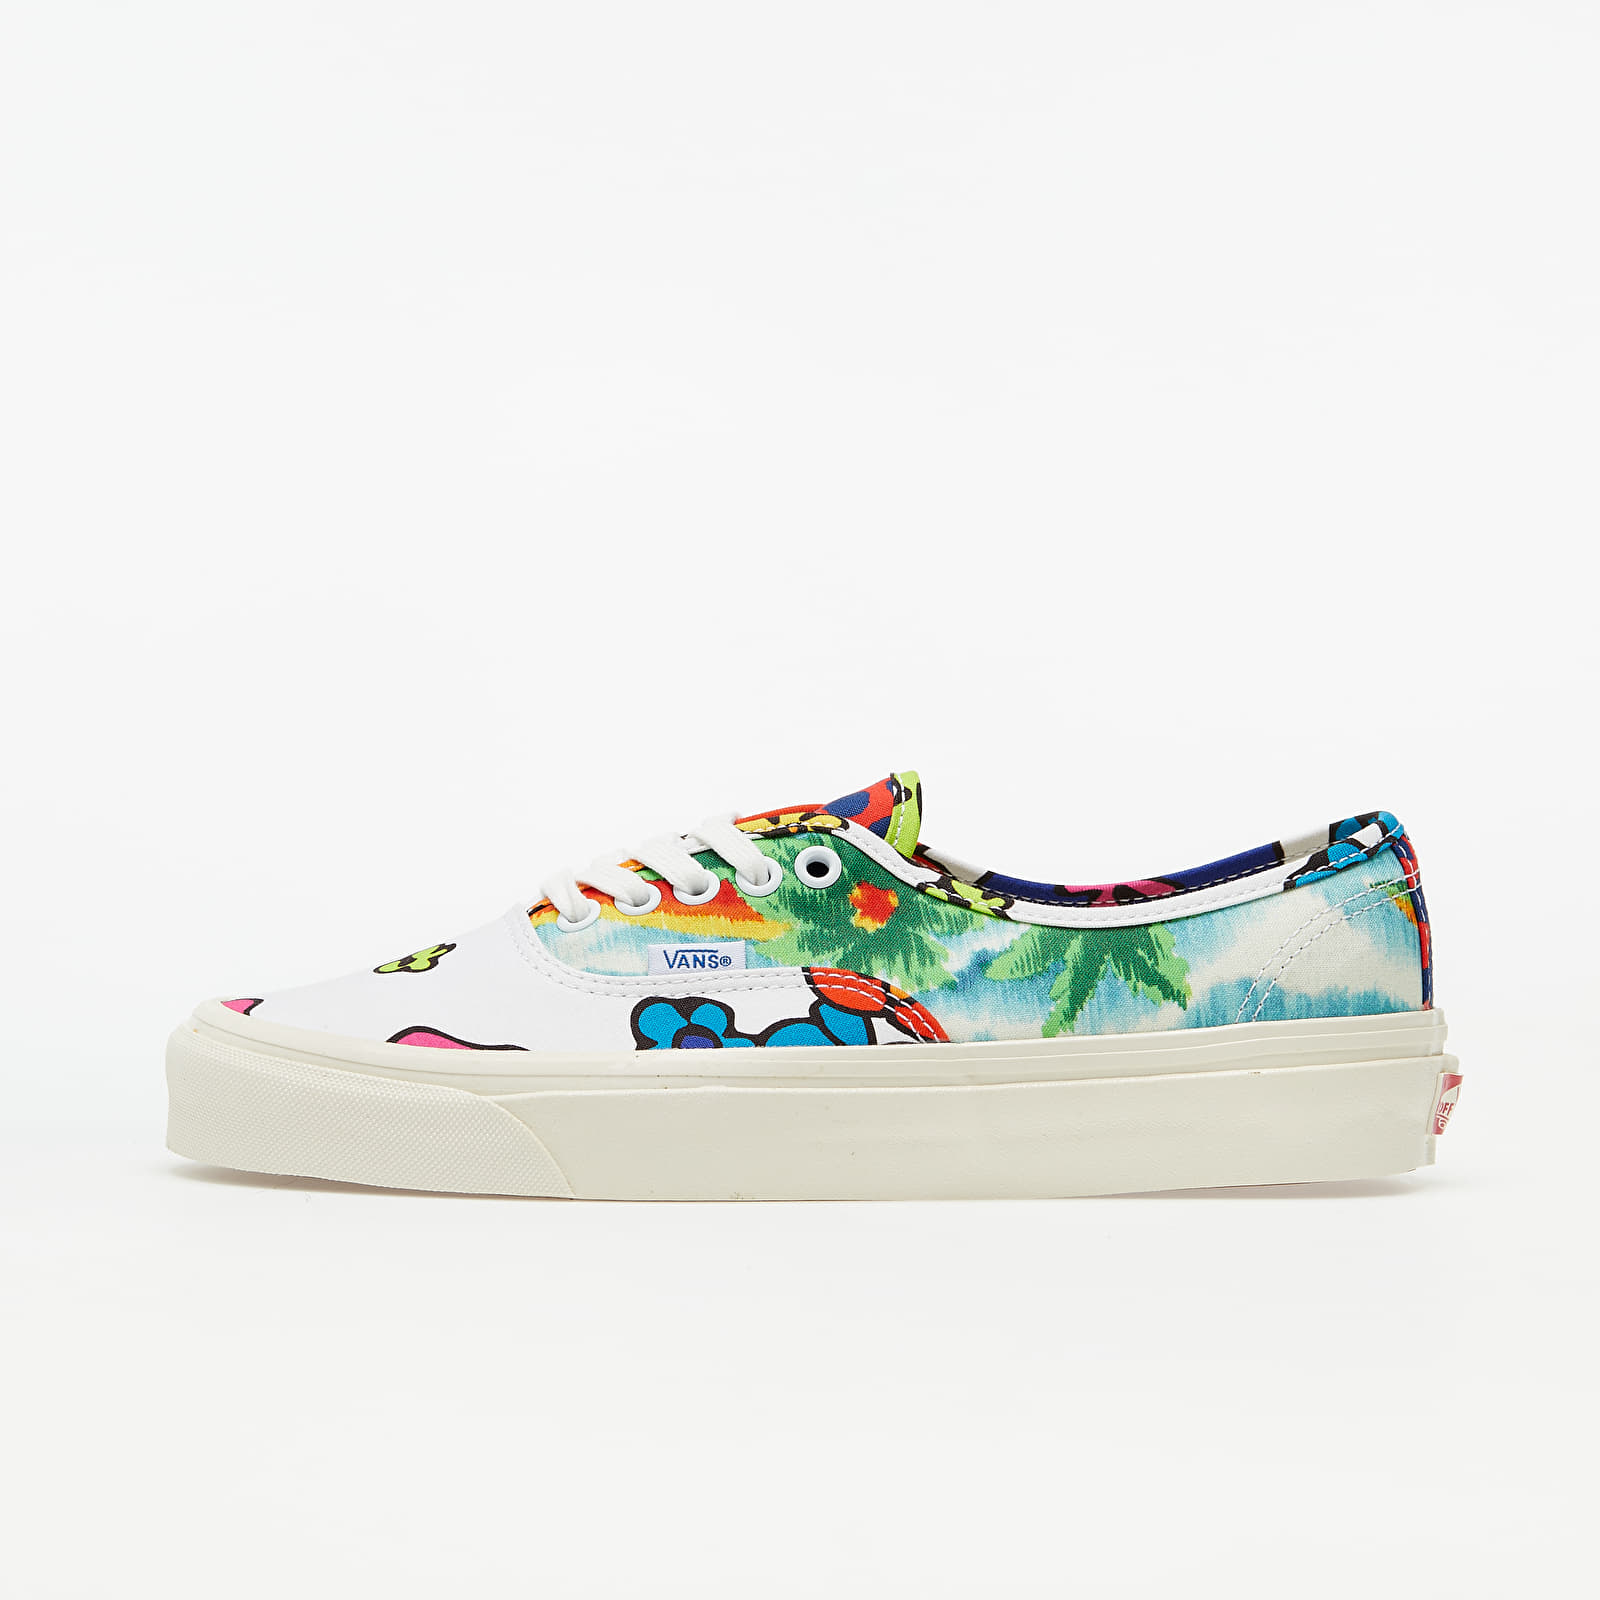 Muške tenisice Vans Authentic 44 DX (Anaheim Factory) Hoffman Fabrics/ Floral Mix